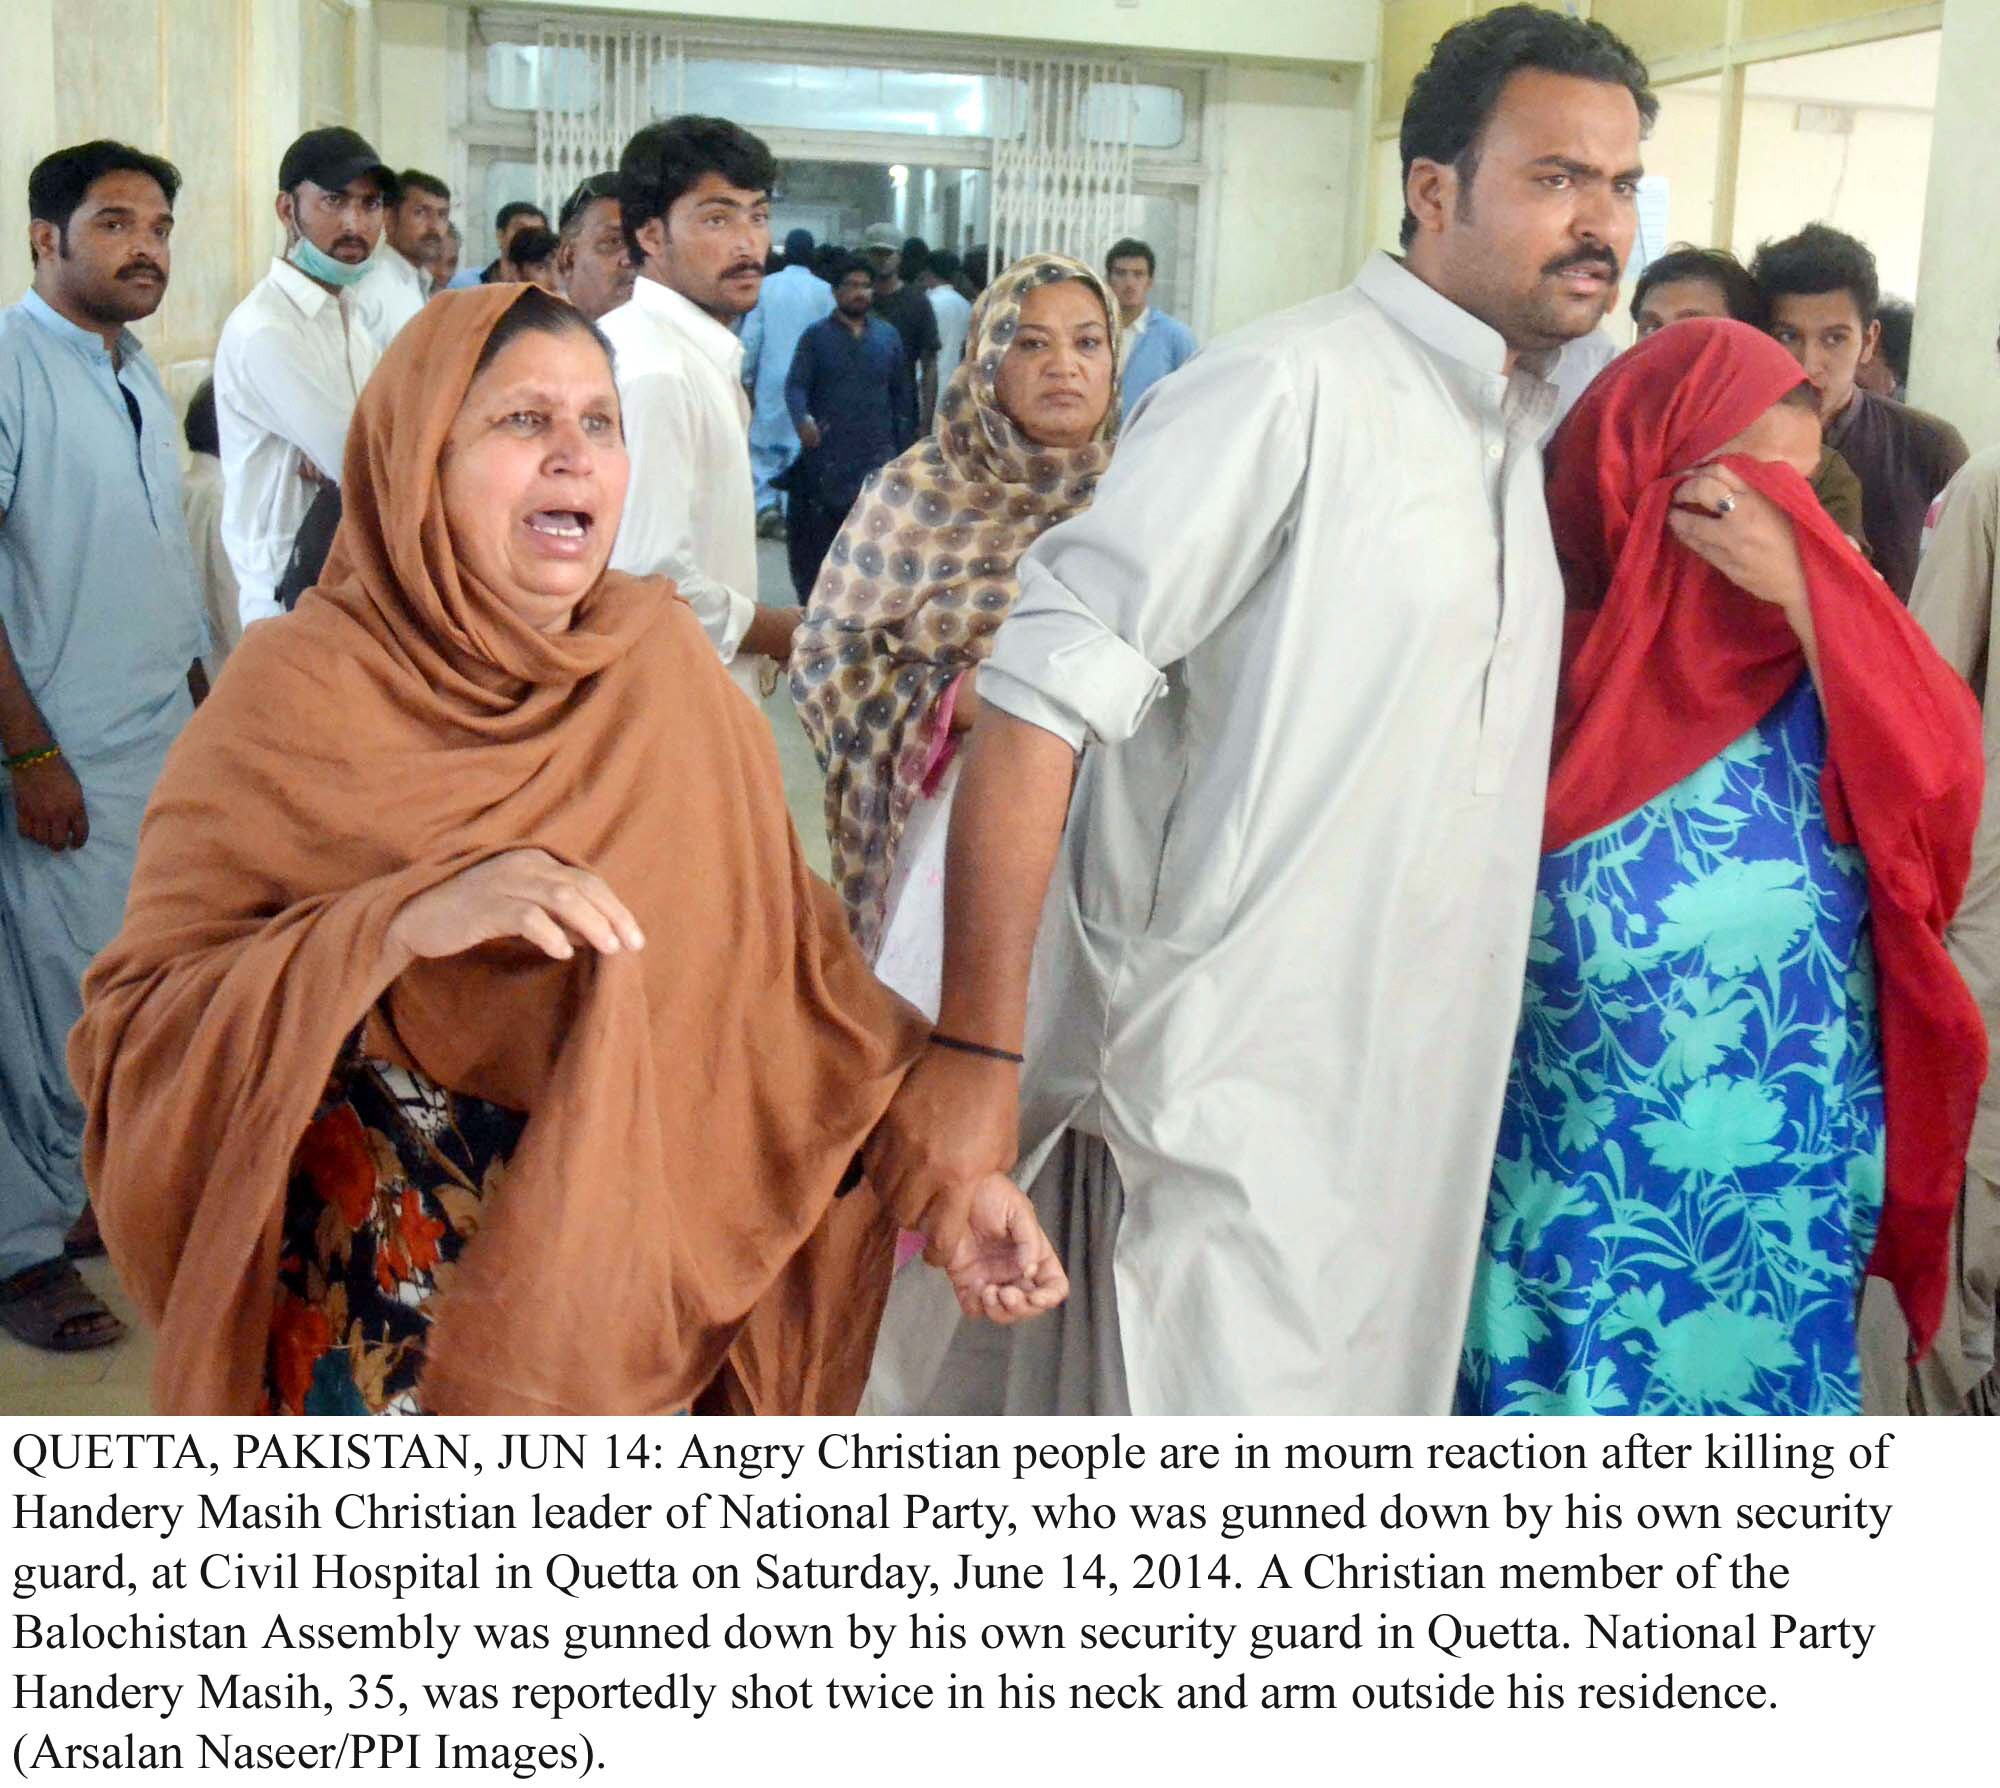 handery masieh 039 s relatives mourn his death at the civil hospital in quetta photo ppi